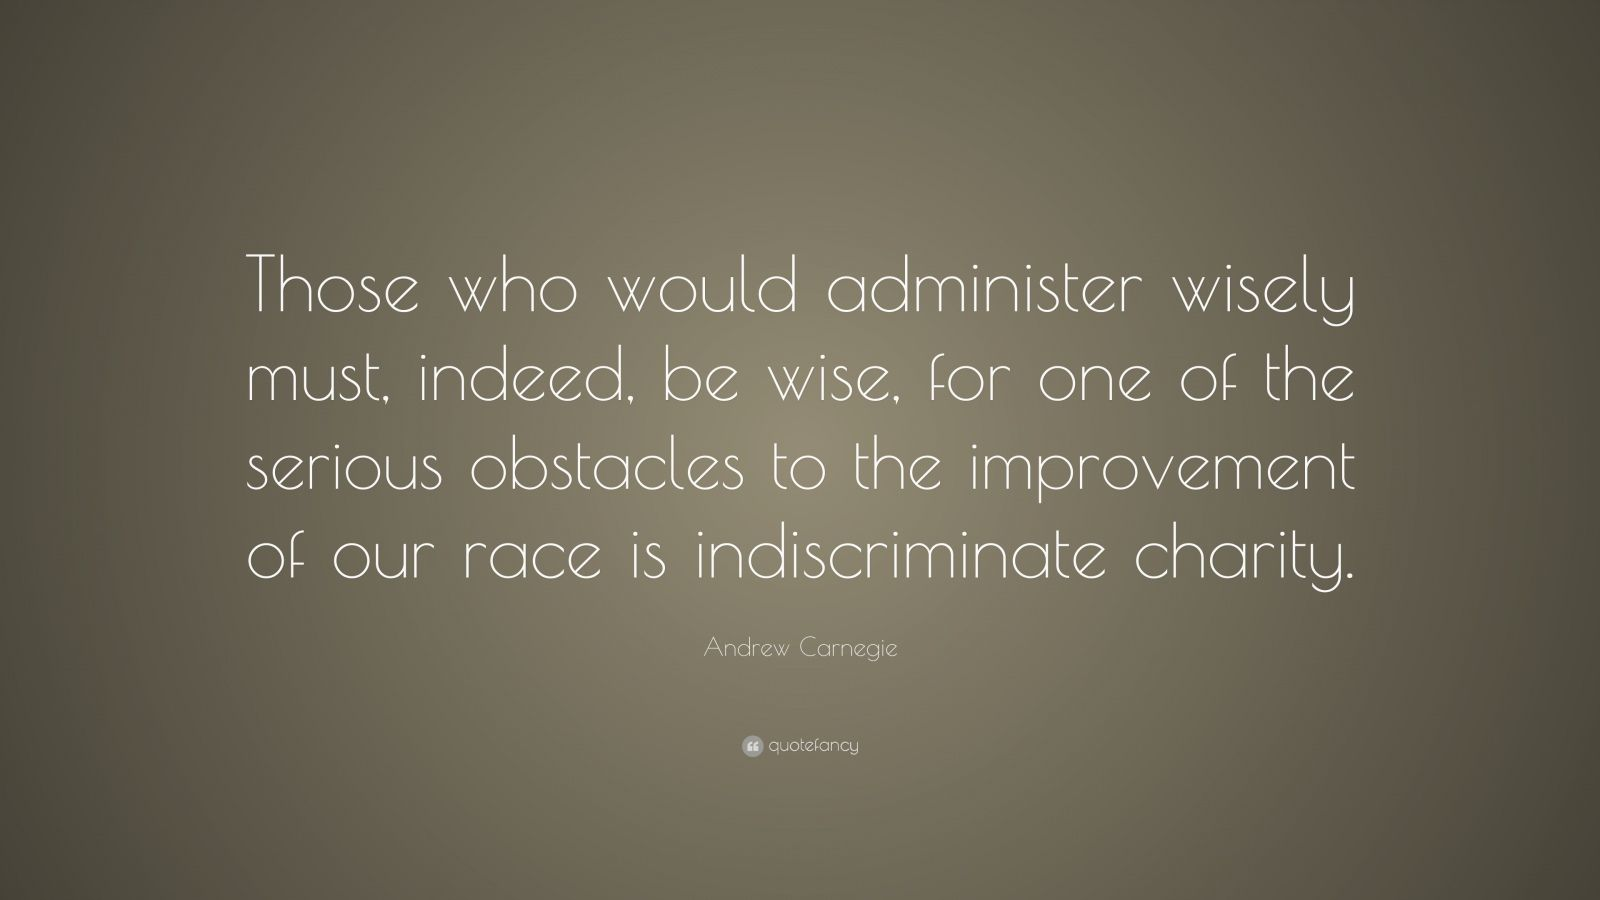 """Andrew Carnegie Quote: """"Those who would administer wisely must, indeed, be wise, for one of the serious obstacles to the improvement of our race is indiscriminate charity."""""""